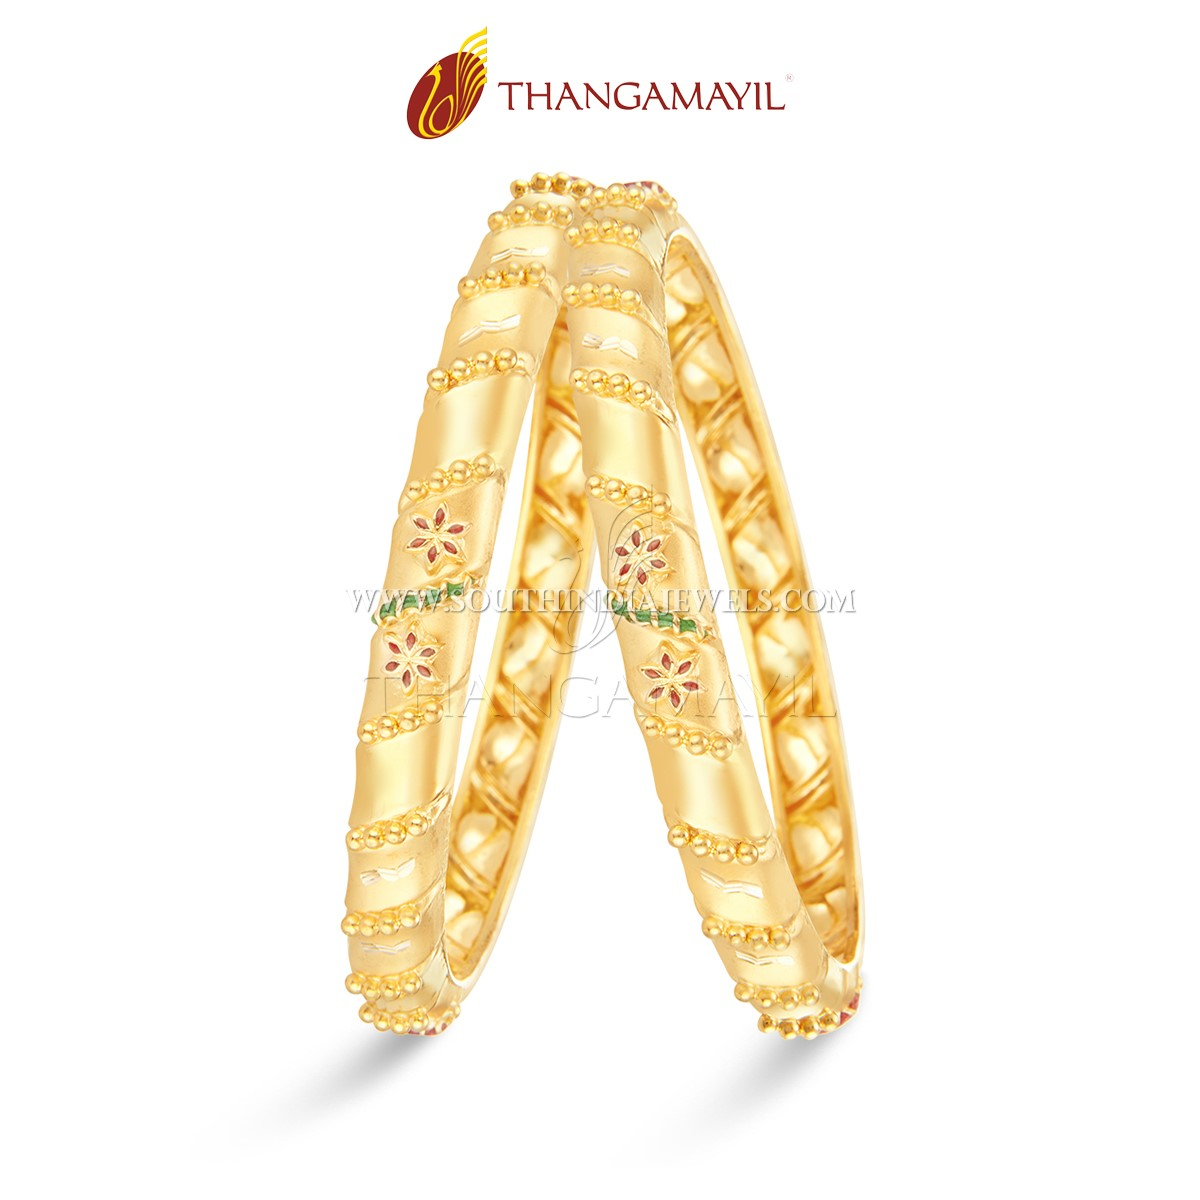 22K Gold Bangle With Enamel Work From Thangamayil